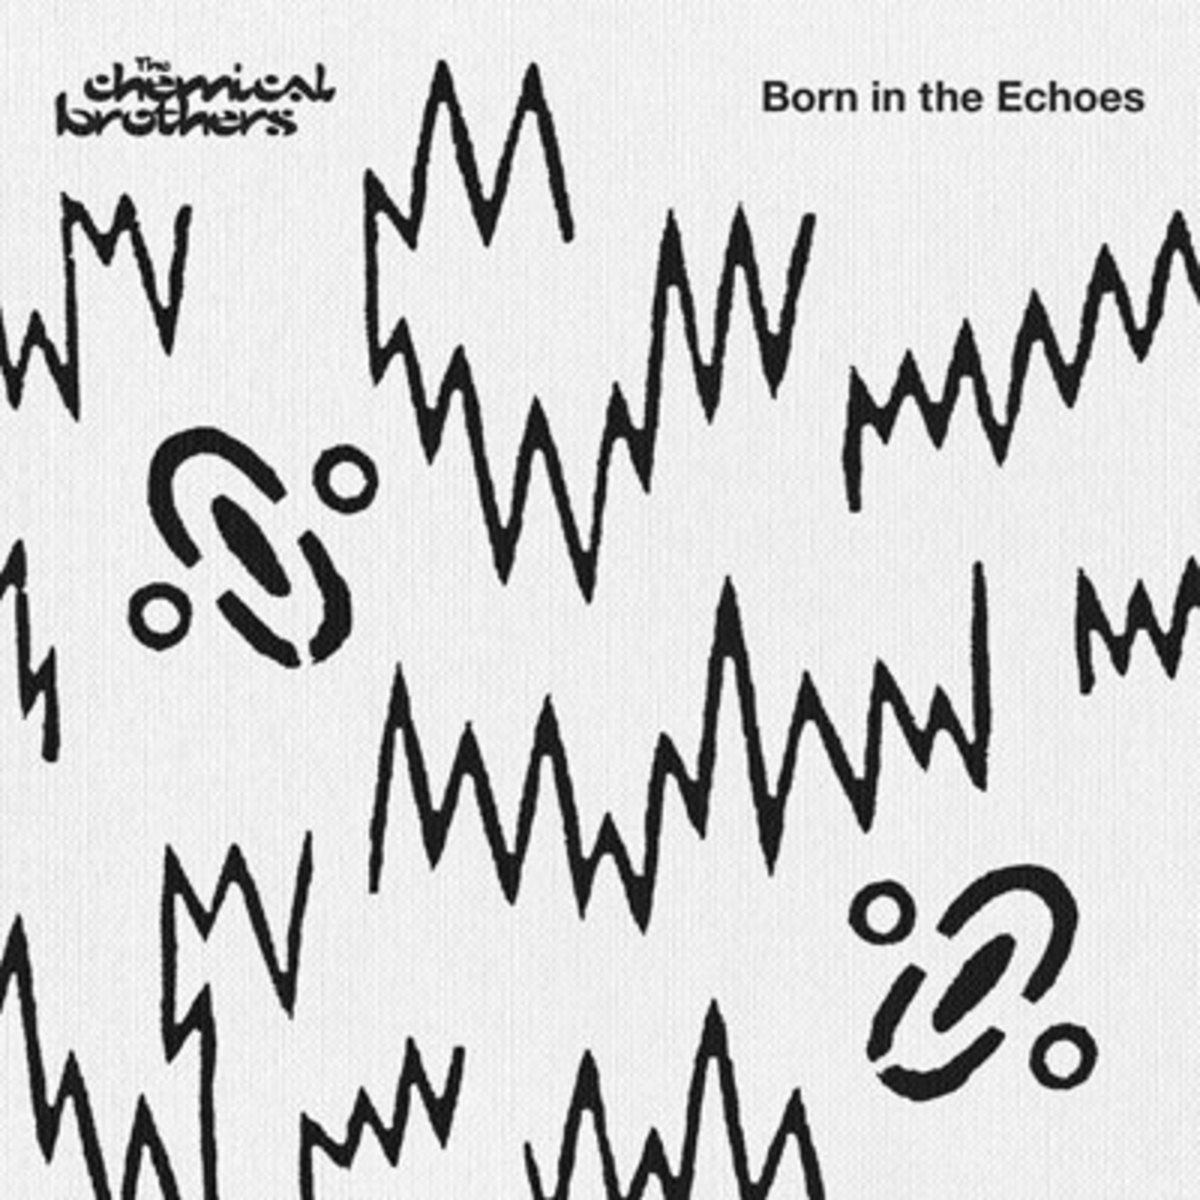 chemical-brothers-born-in-the-echoes.jpg